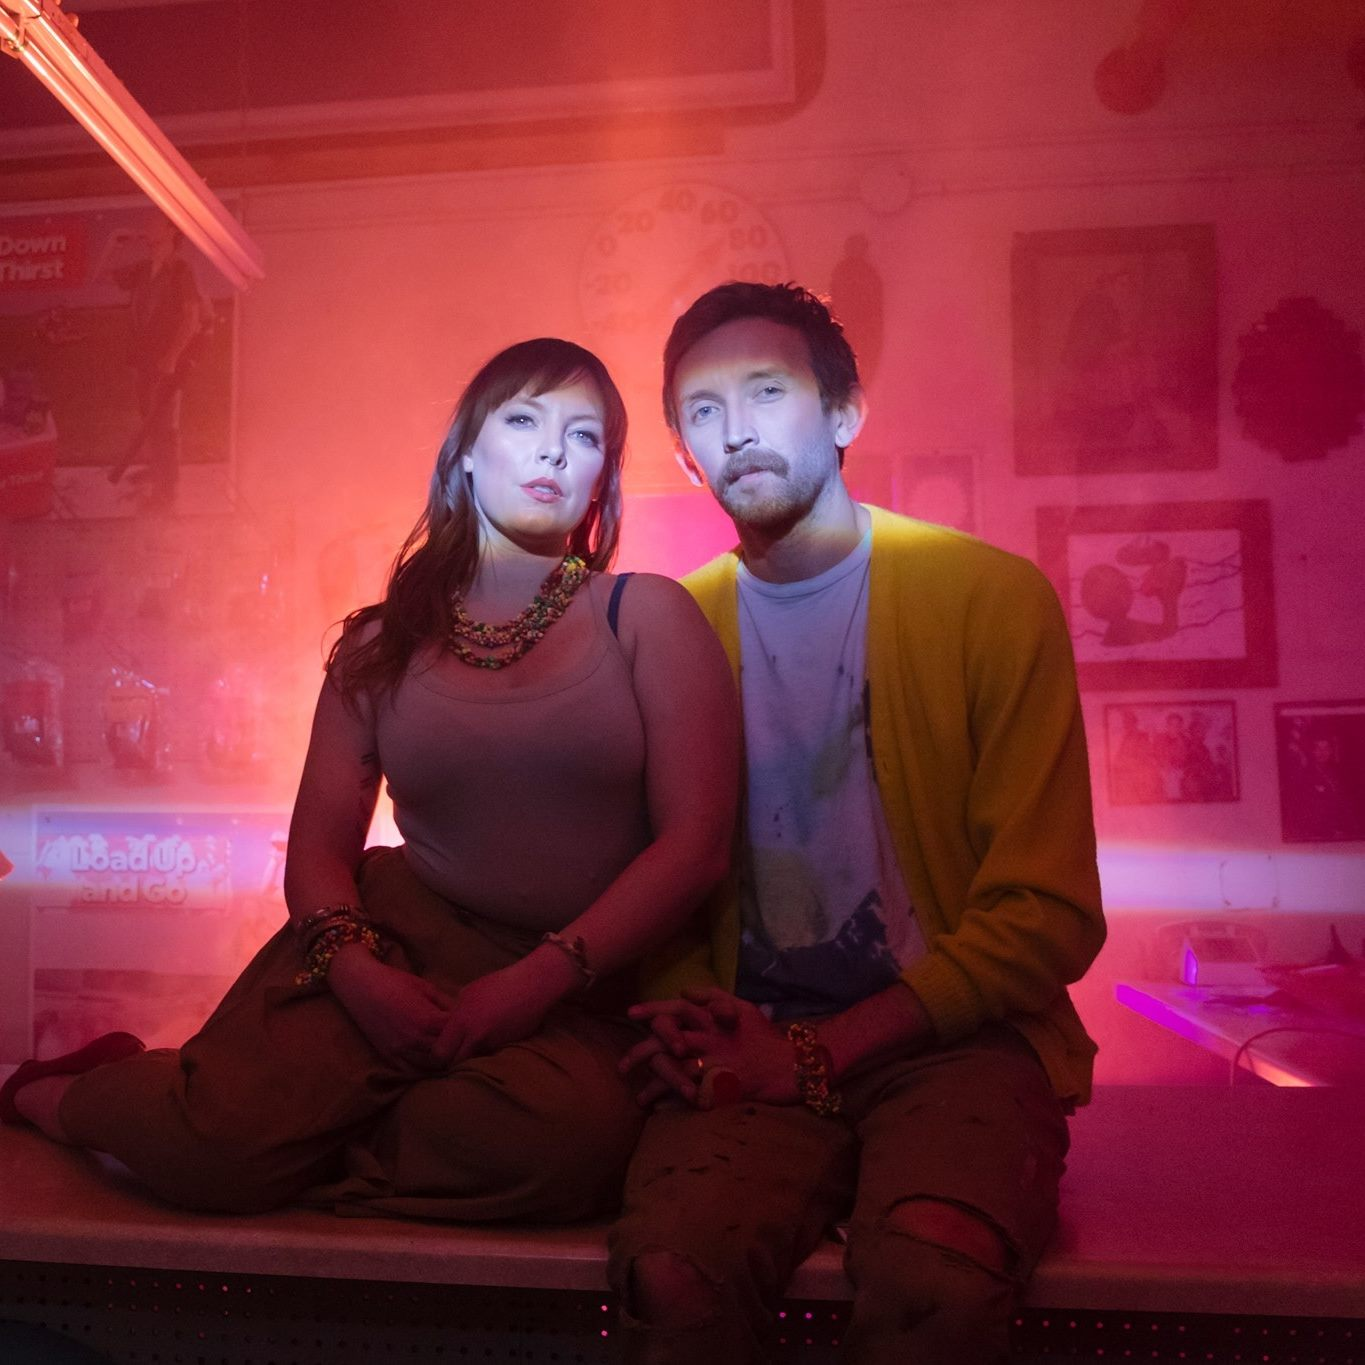 Amelia Meath and Nick Sanborn from Sylvan Esso. Image:Lindsey Kennedy and Meow Wolf